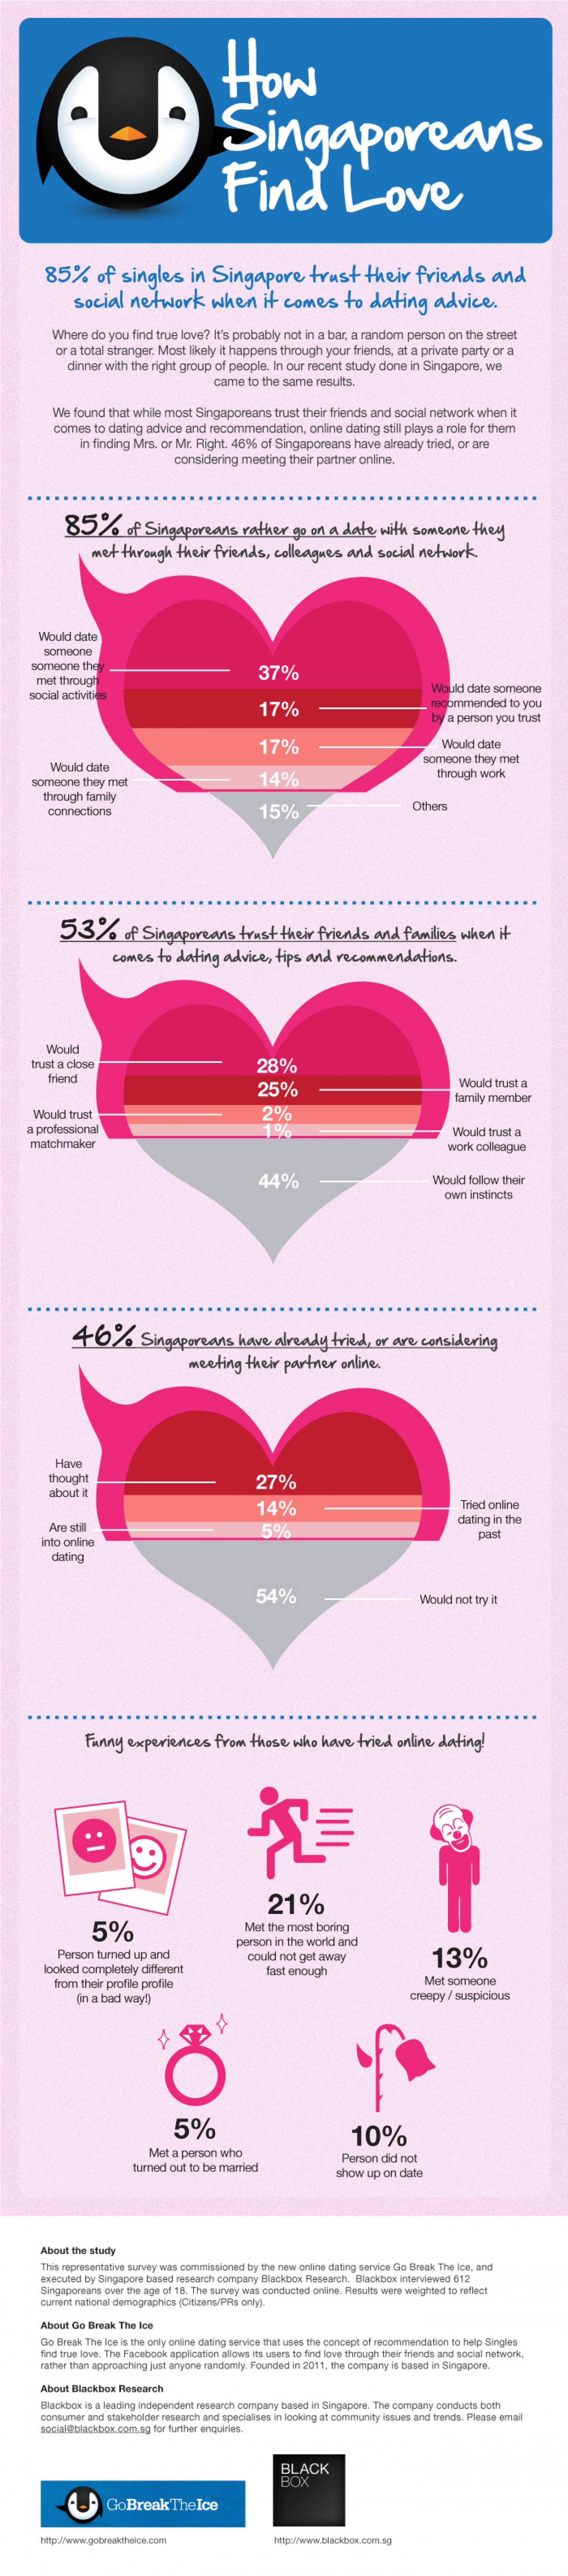 You Know Anot? Singaporean Sentiments, July 2012 Infographic